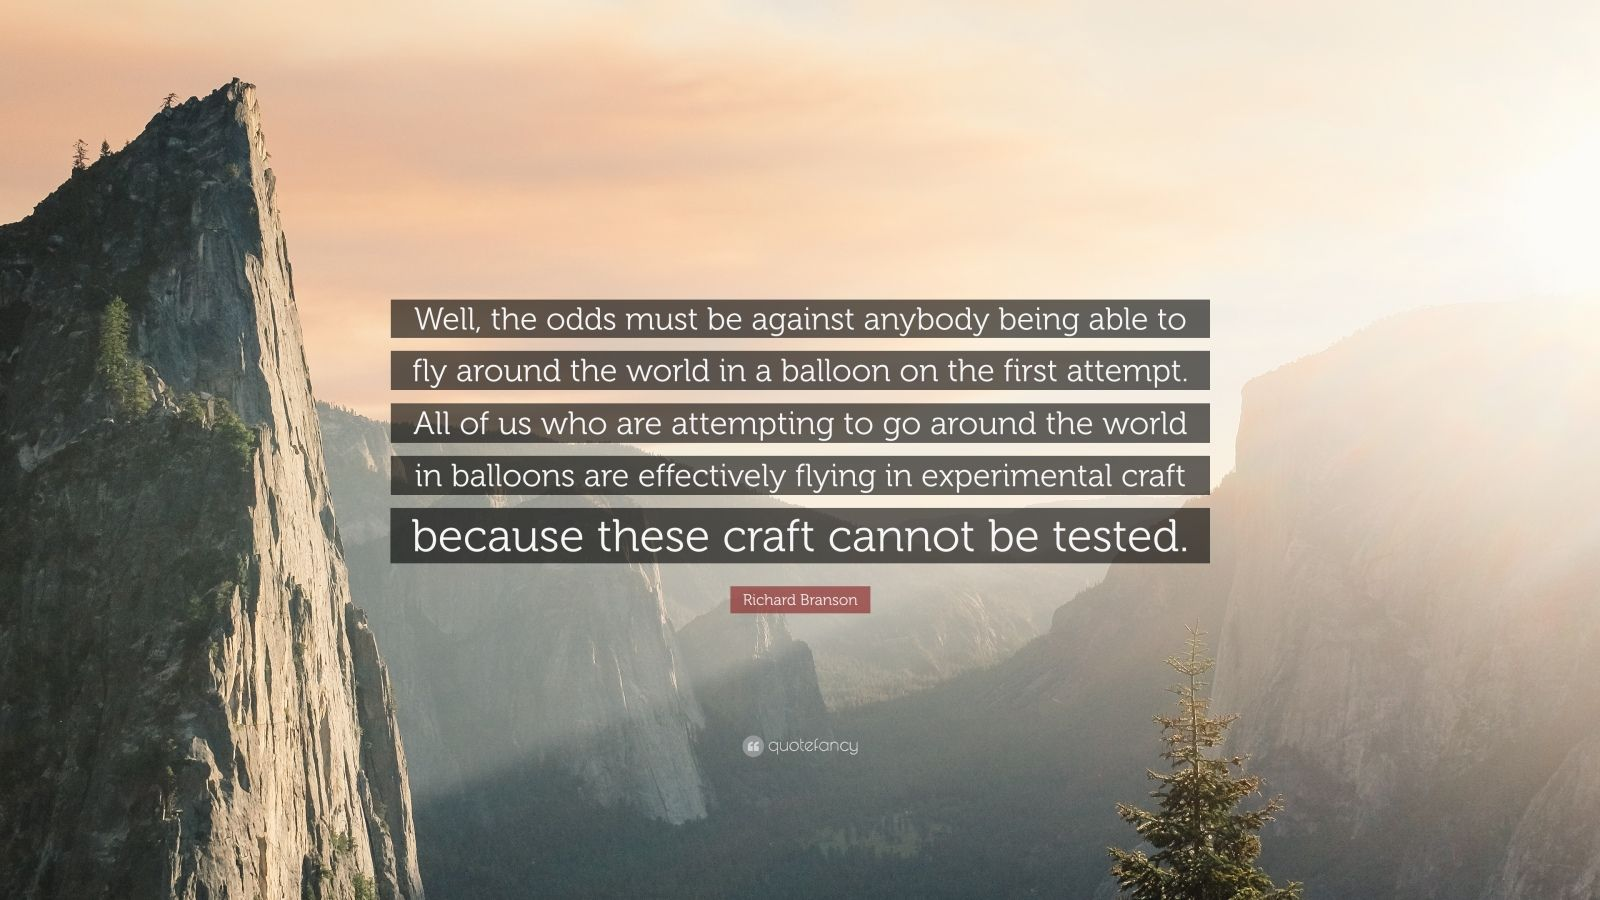 """Richard Branson Quote: """"Well, the odds must be against anybody being able to fly around the world in a balloon on the first attempt. All of us who are attempting to go around the world in balloons are effectively flying in experimental craft because these craft cannot be tested."""""""